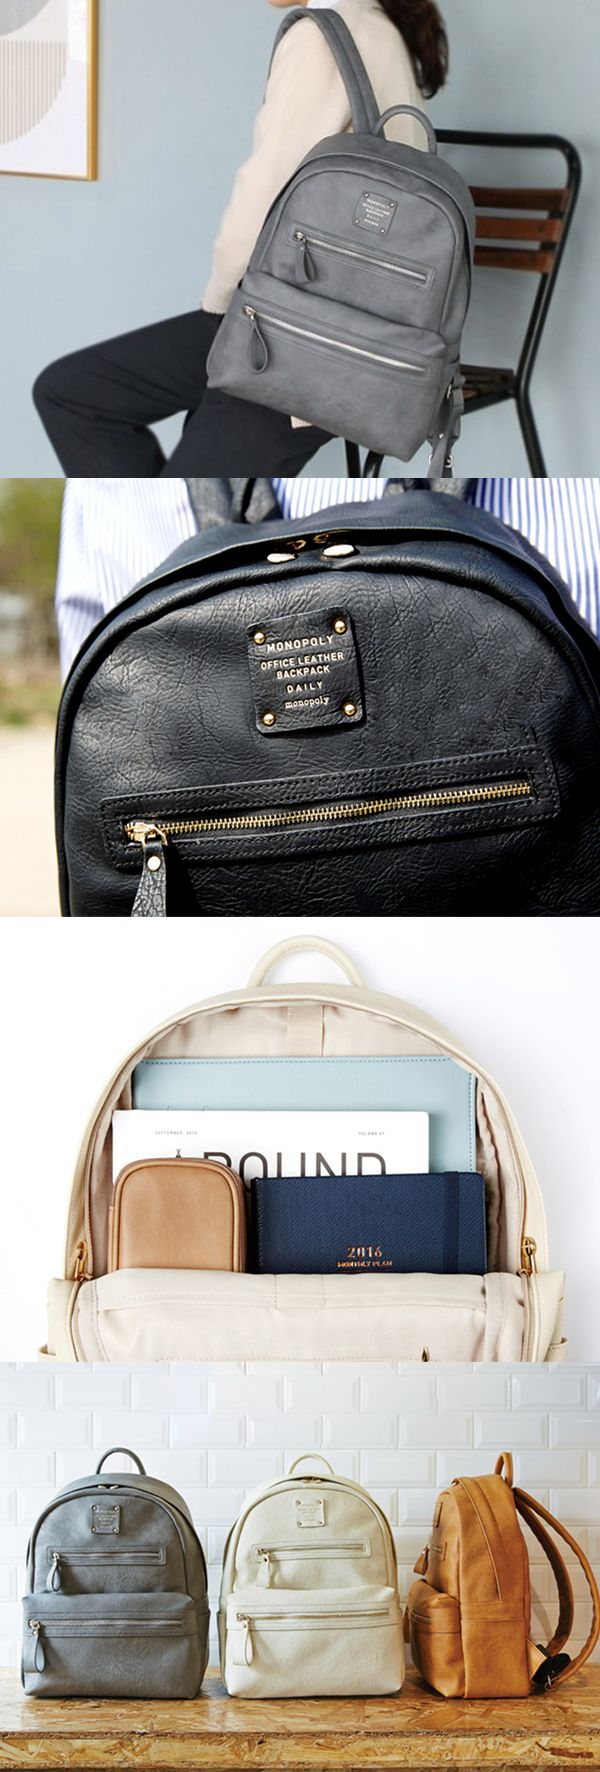 Hold onto your hats, ladies! Our backpack collection just got another great addition you will fall in love with. Here is the 411 on this baby: water resistant coating, 4 classic & trending colors, 8 pockets for all your daily carry, 1 main compartment, & even 1 laptop pocket that can carry up to an 11 inch laptop! But wait, there's more! You also get well-padded & adjustable straps for extra comfort to take this beaut everywhere you go! The Monopoly Daily Leather Backpack will be a good…